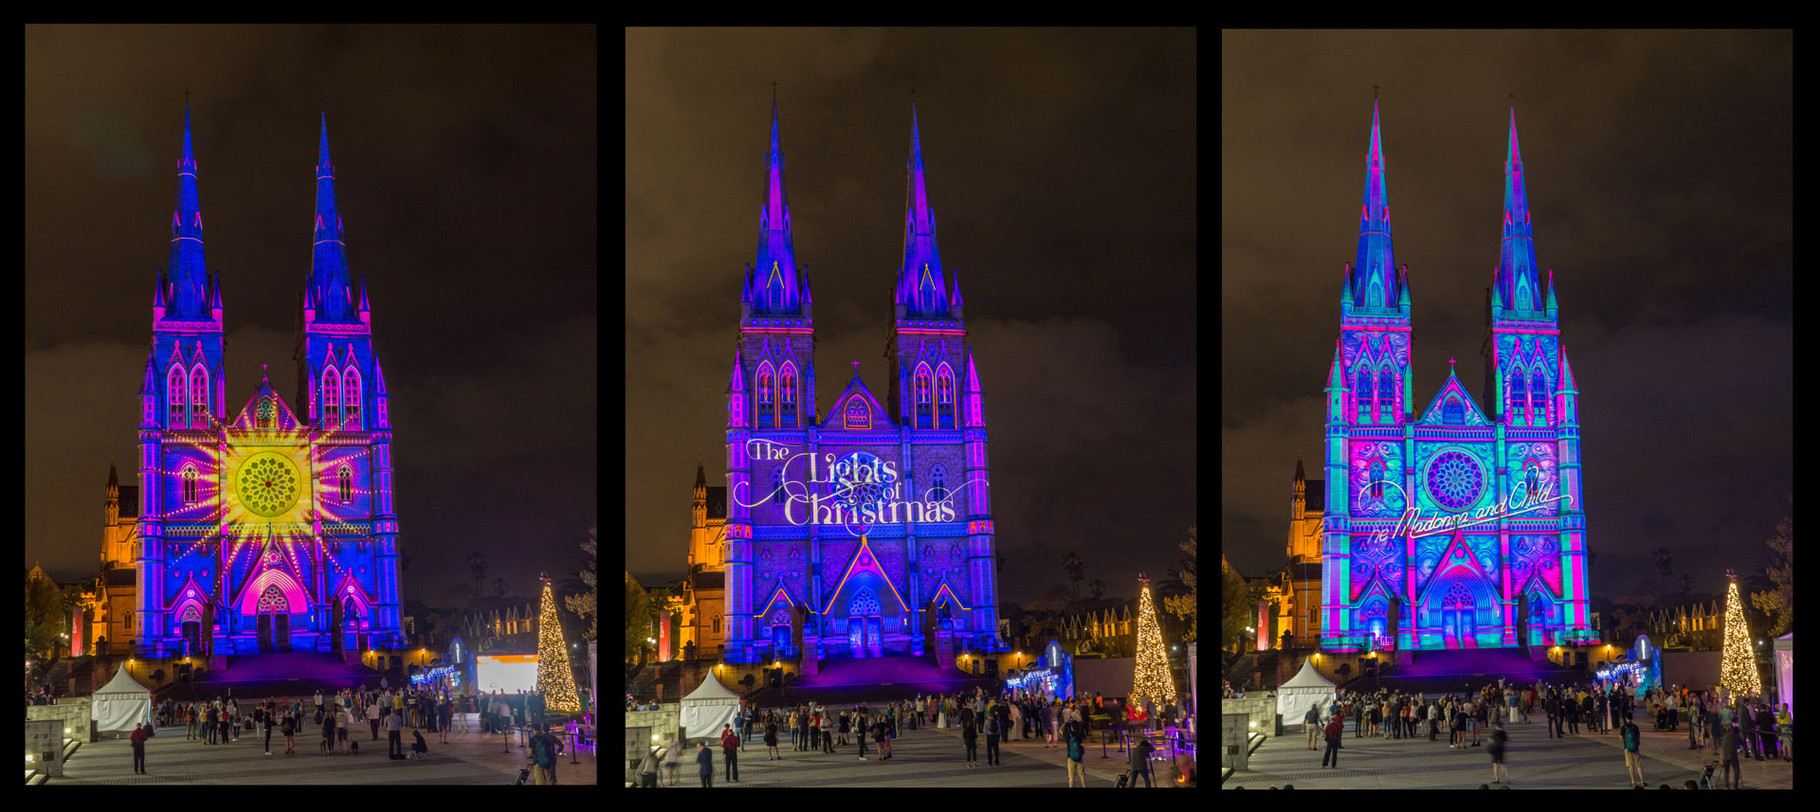 Lights of Christmas, St. Mary Church, Sydney [Australia, 2014]